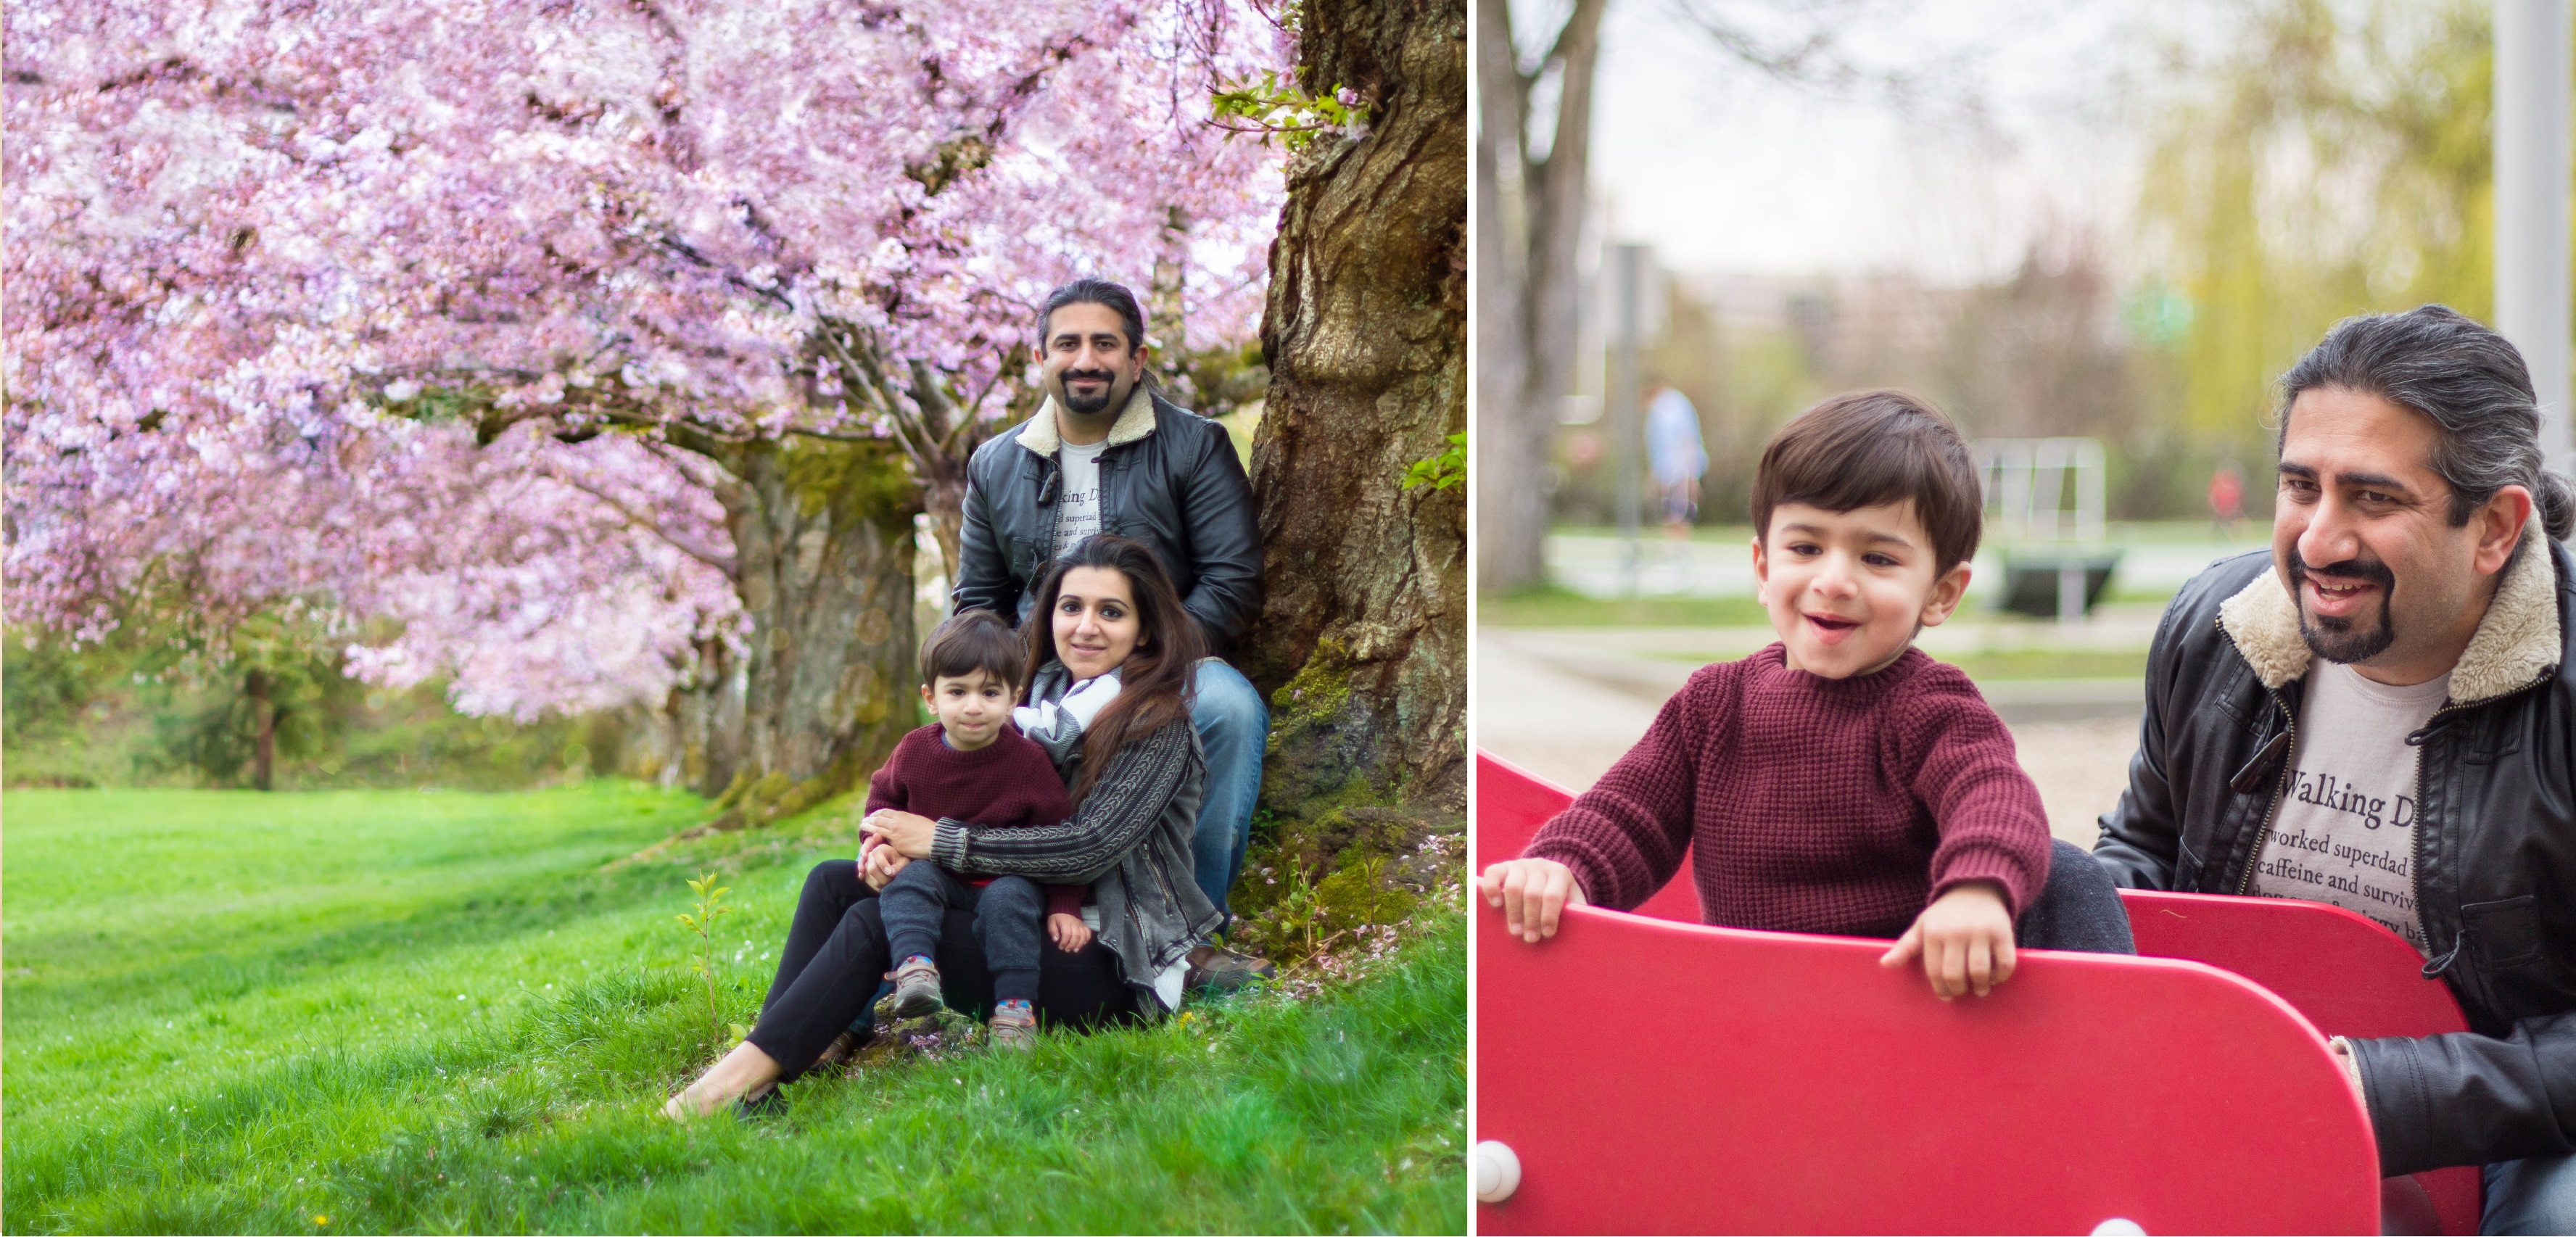 Spring-time family photography